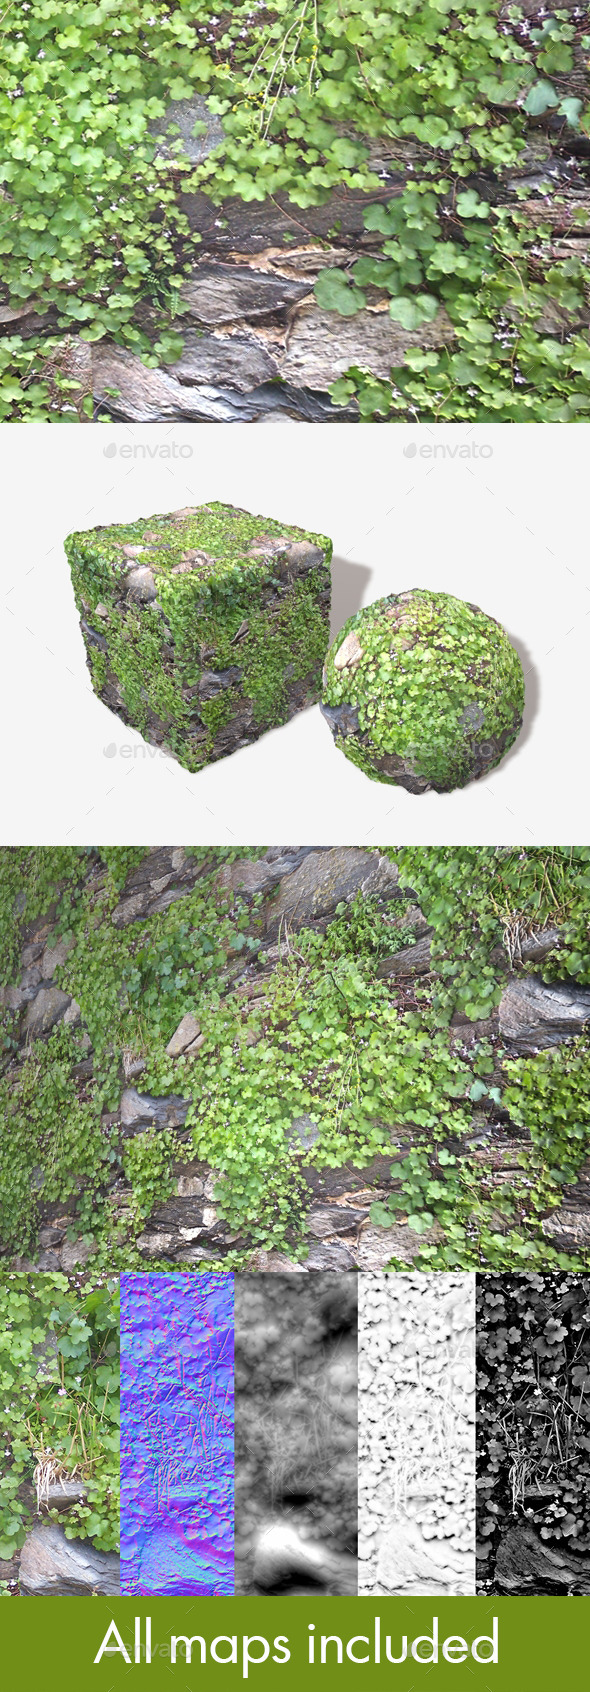 Rock Wall Plants Seamless Texture